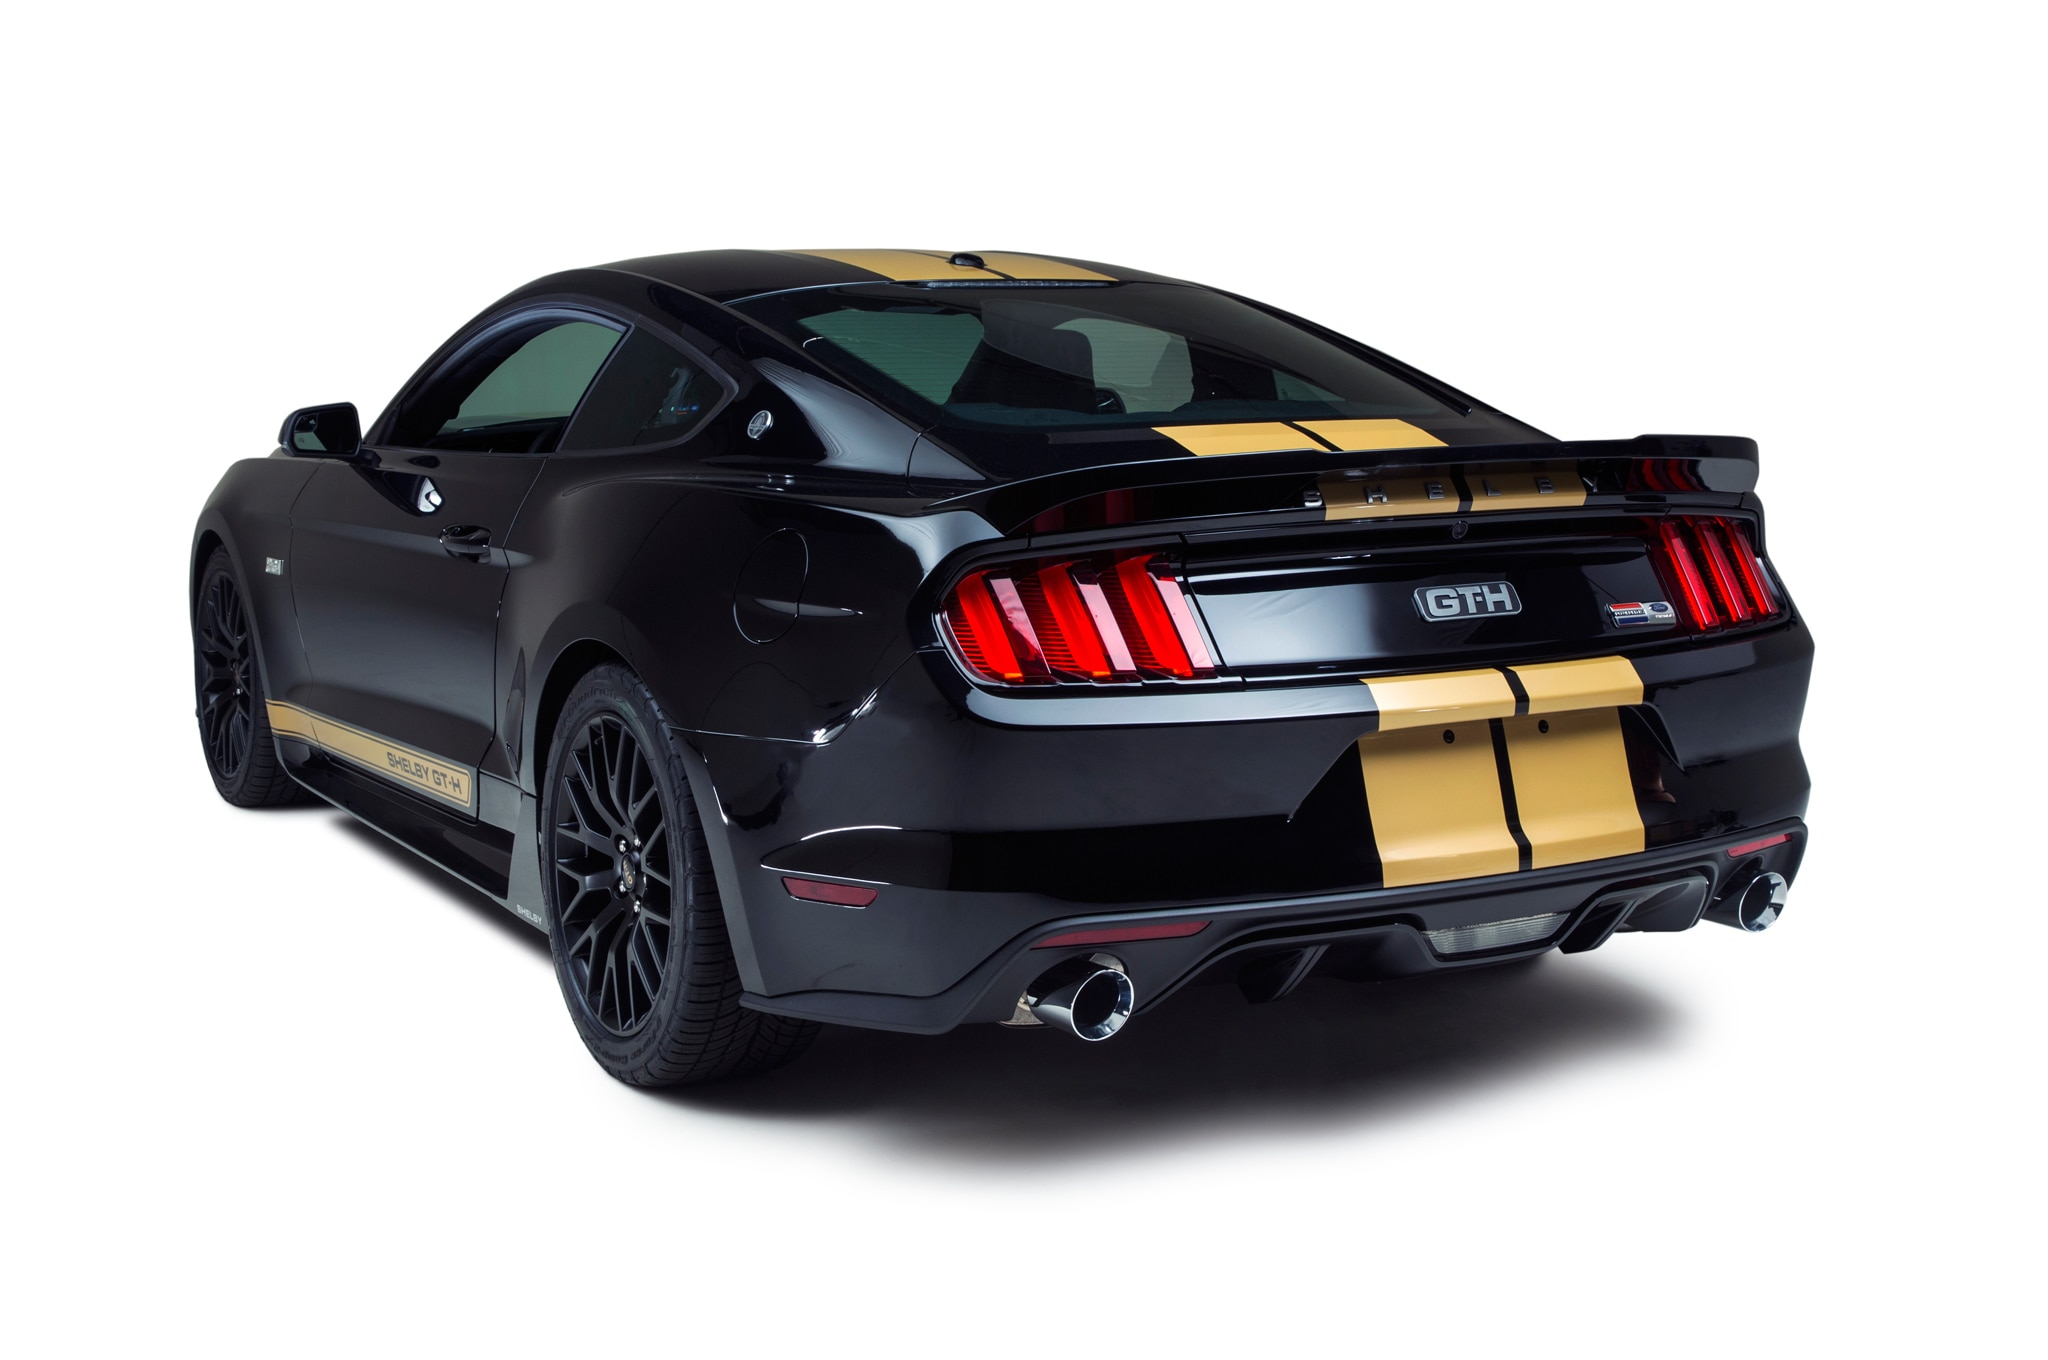 http://st.automobilemag.com/uploads/sites/11/2016/03/2016-Ford-Shelby-GT-H-rear-side-view.jpg